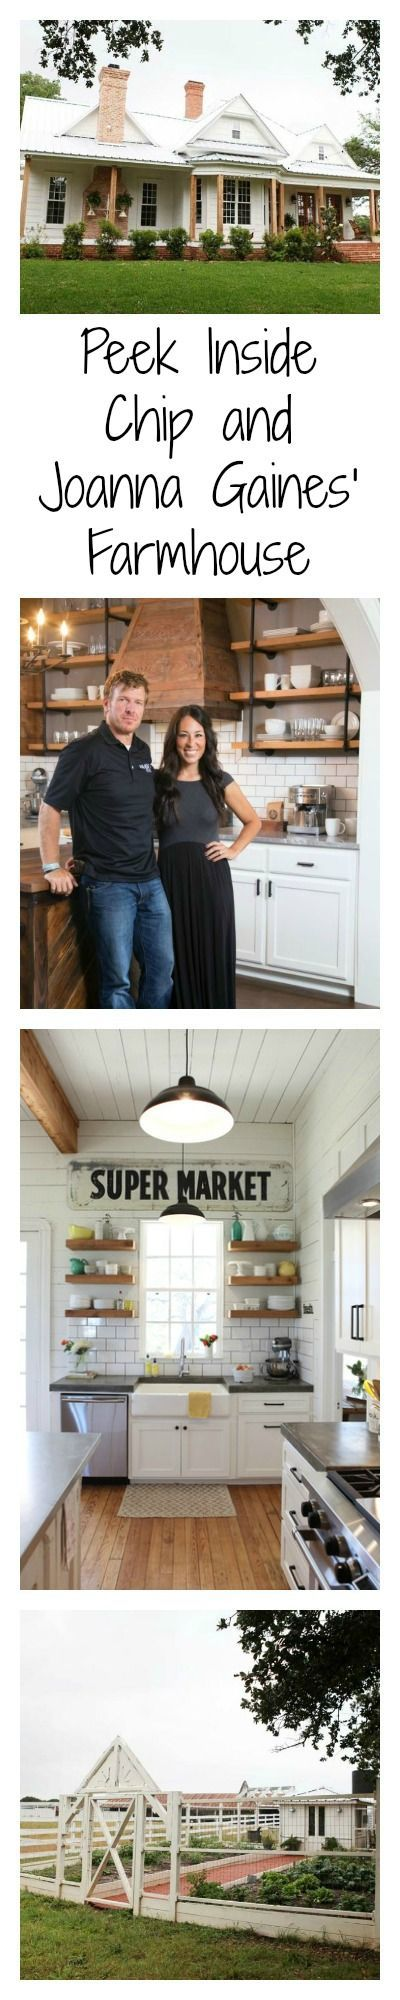 304 best images about fixer upper style on pinterest for How much do chip and joanna gaines make